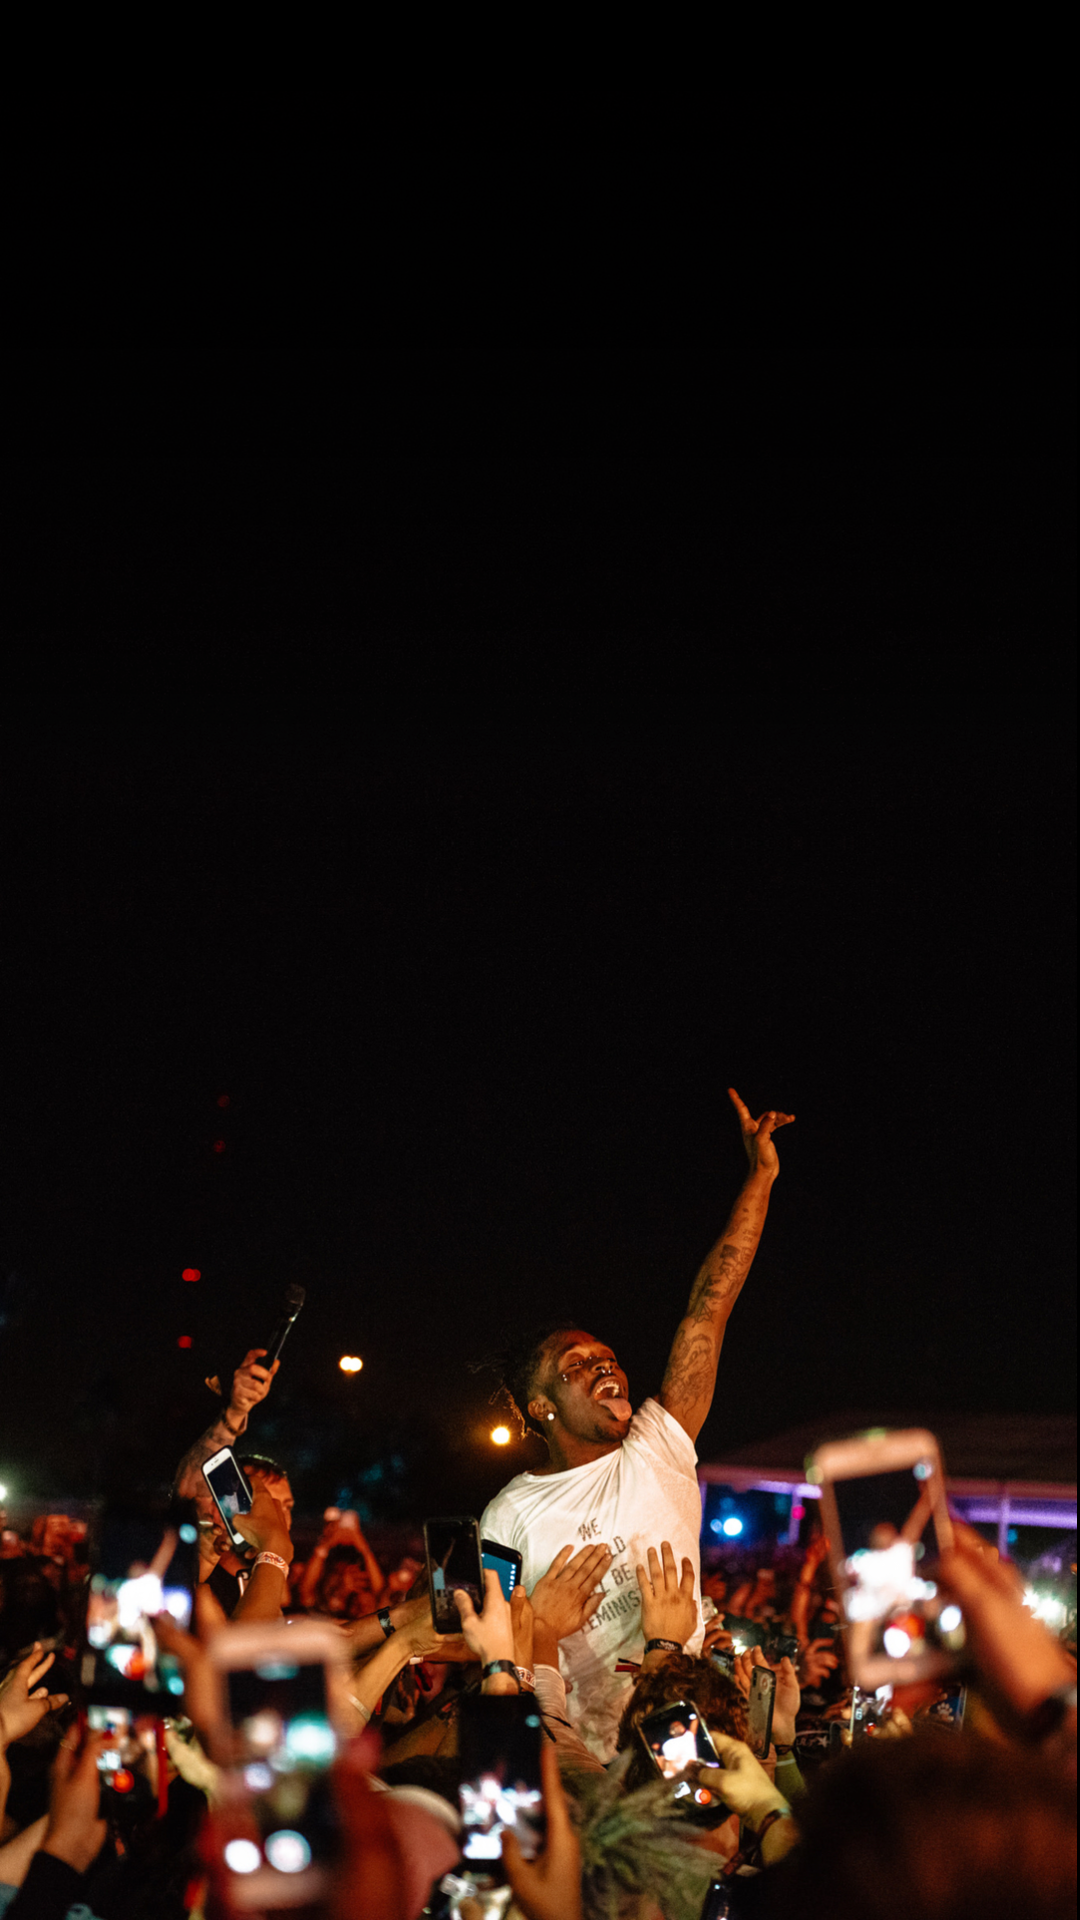 Lil Uzi Vert Wallpaper Phone   1080x1920   Download HD Wallpaper